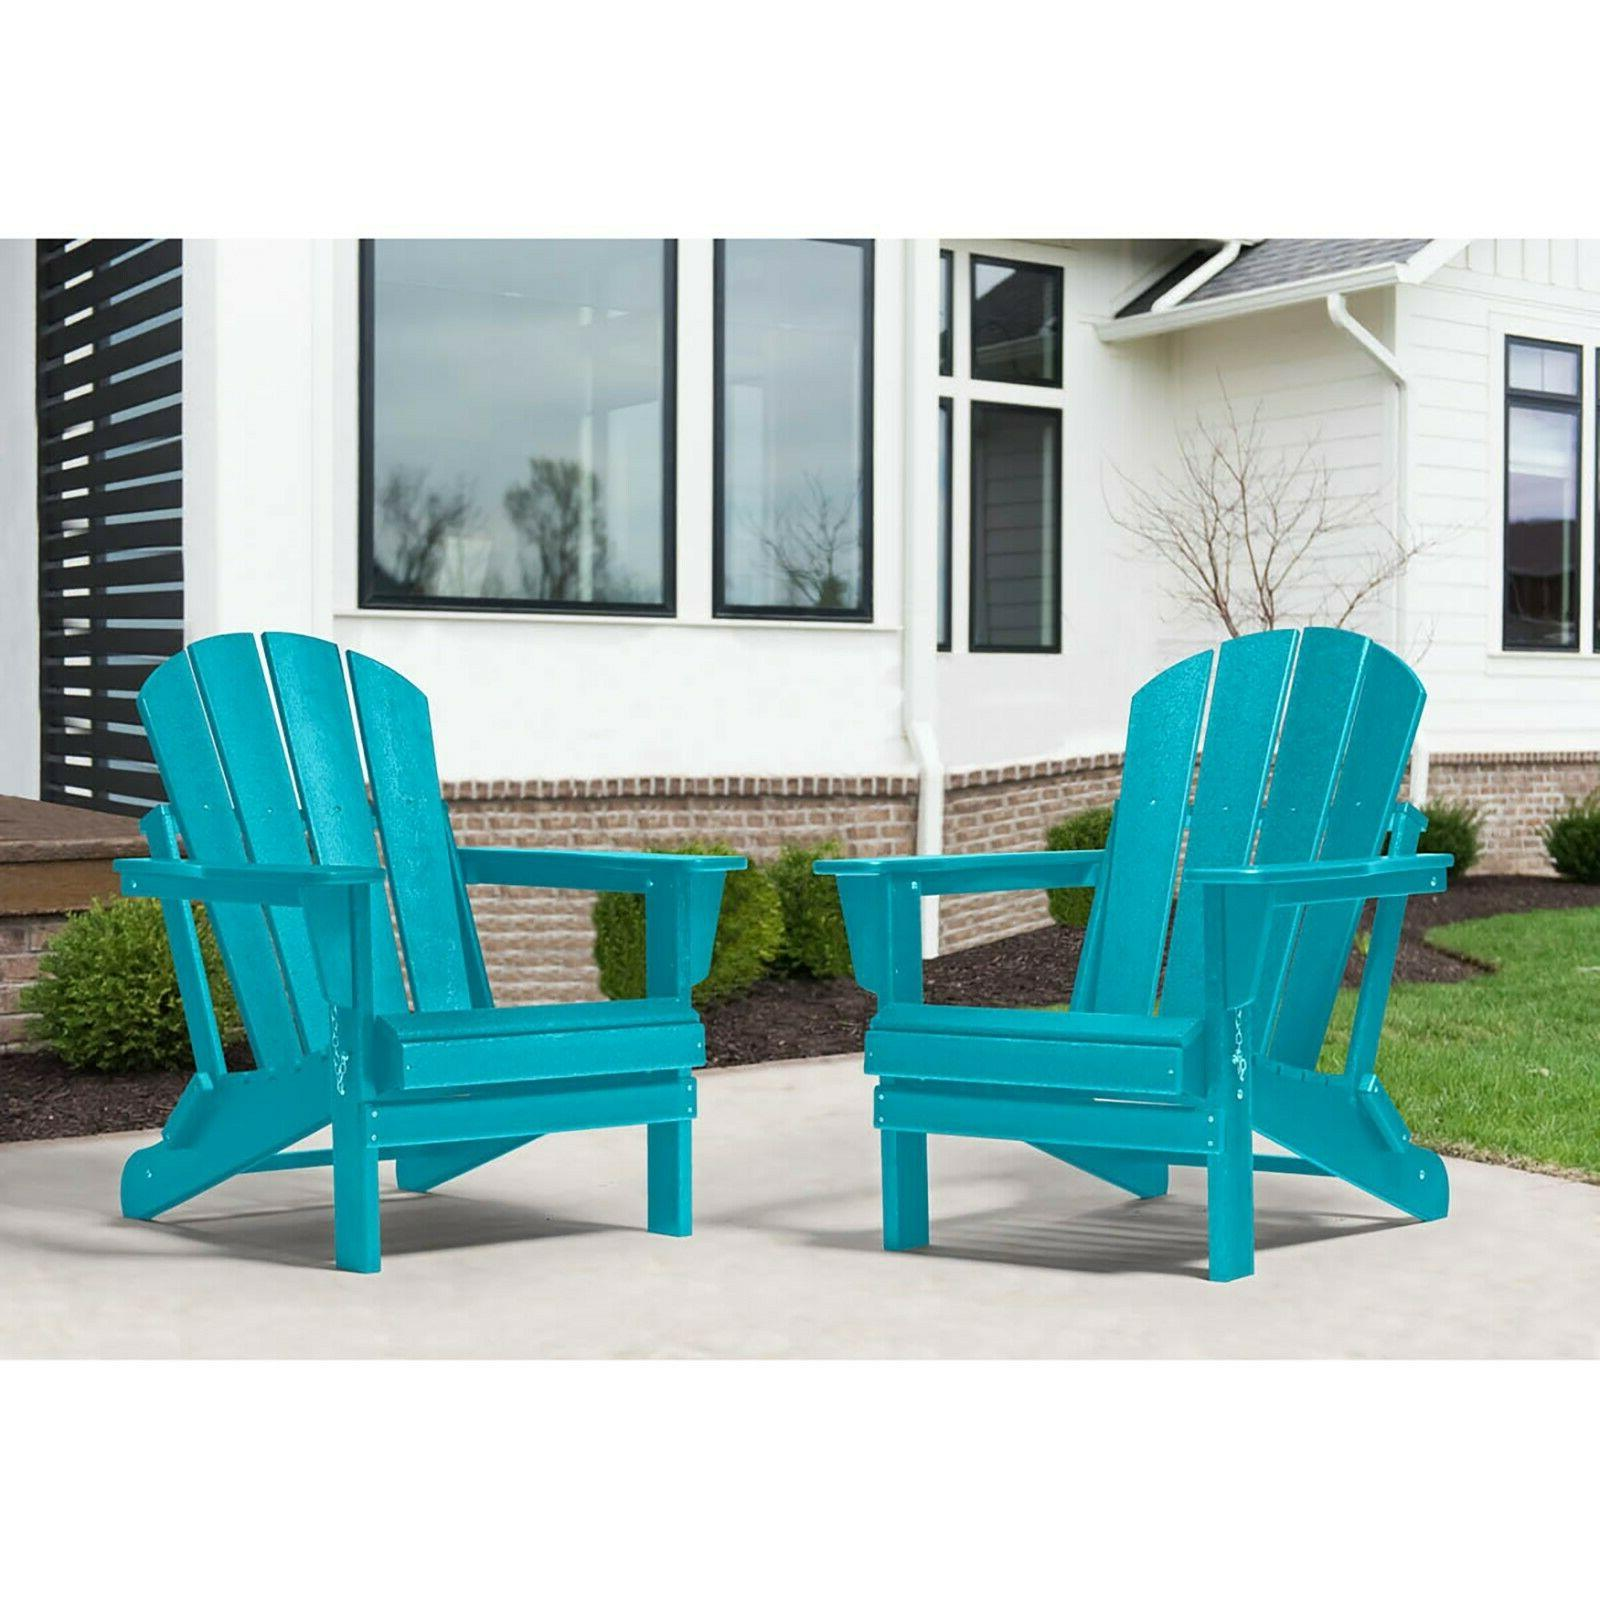 2 Outdoor Patio Adirondack Chairs Lounger